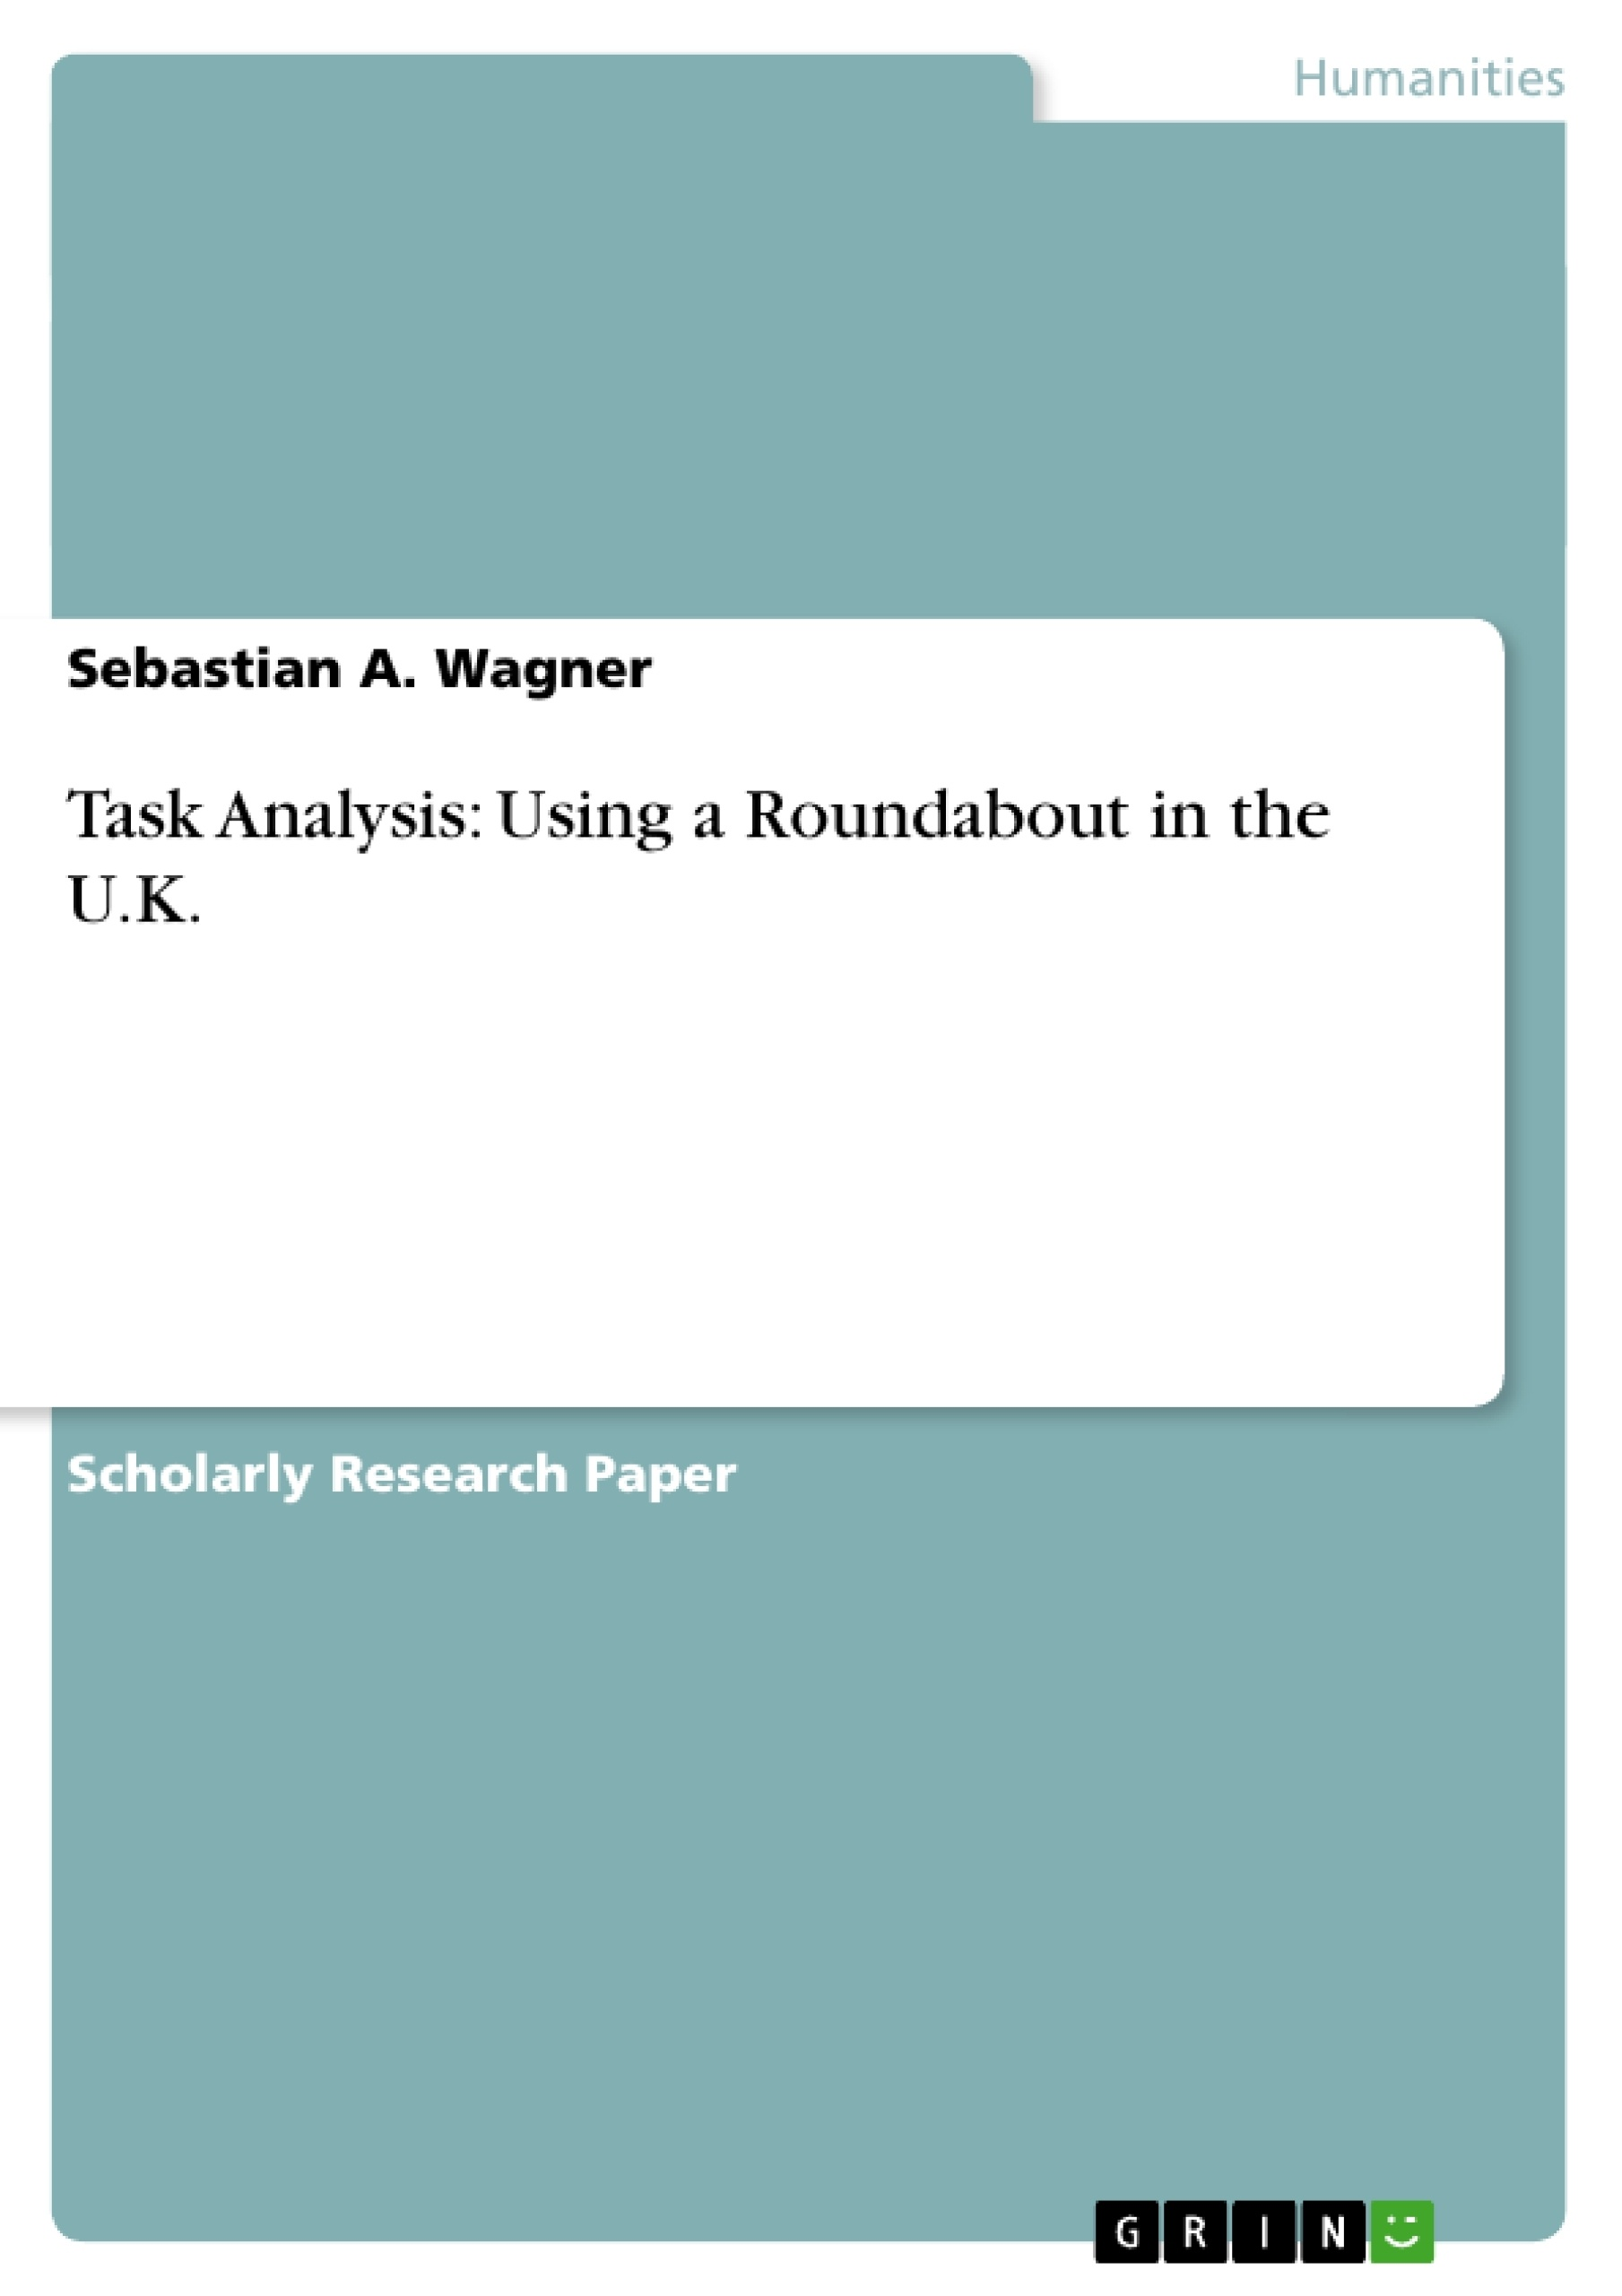 Title: Task Analysis: Using a Roundabout in the U.K.